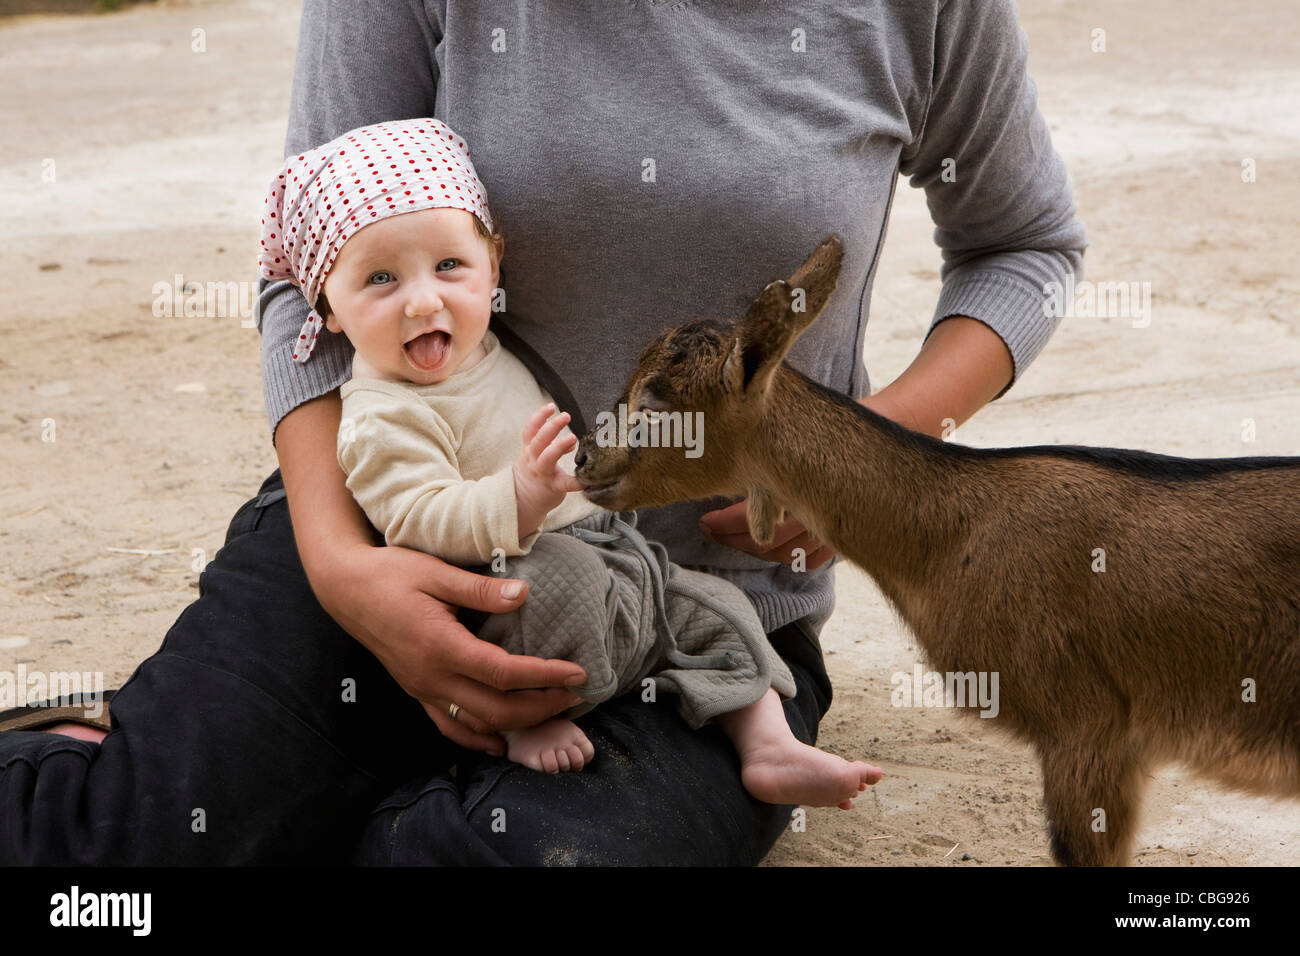 A goat nibbling on a baby's finger - Stock Image